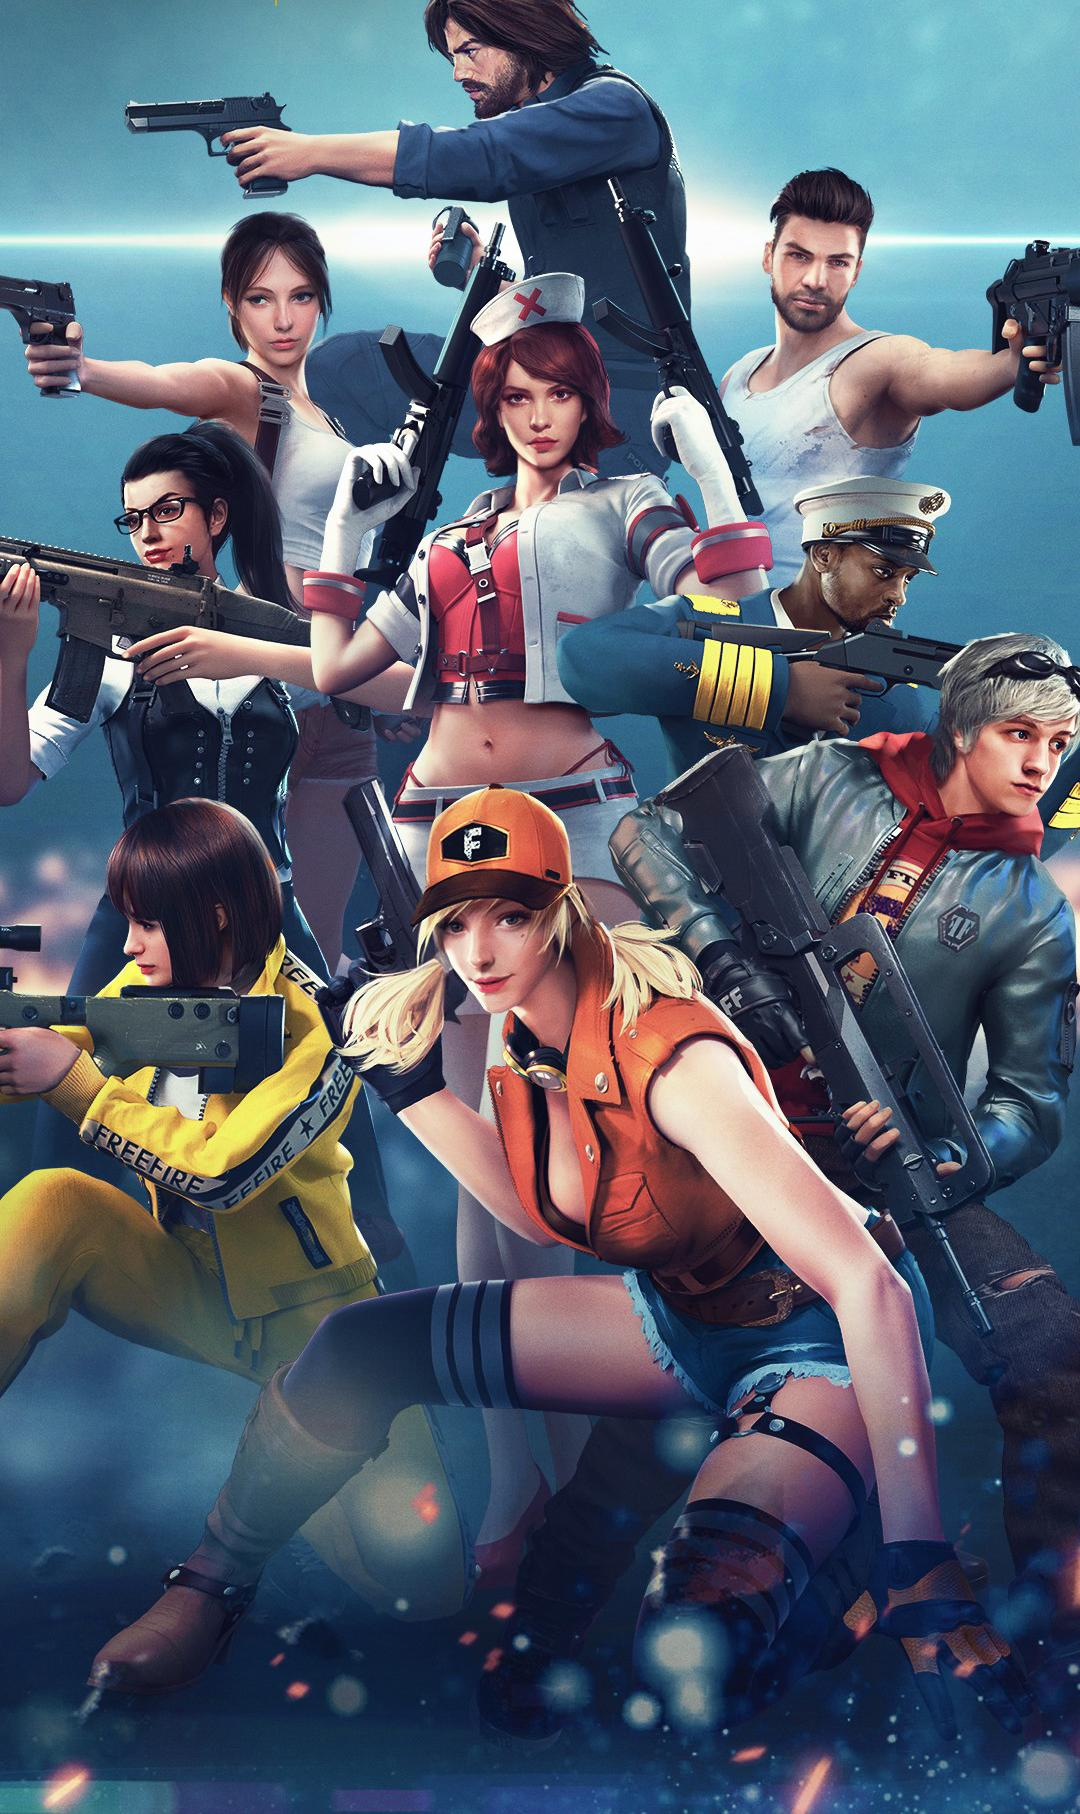 Best Free Fire Wallpapers Hd 2019 For Android Apk Download